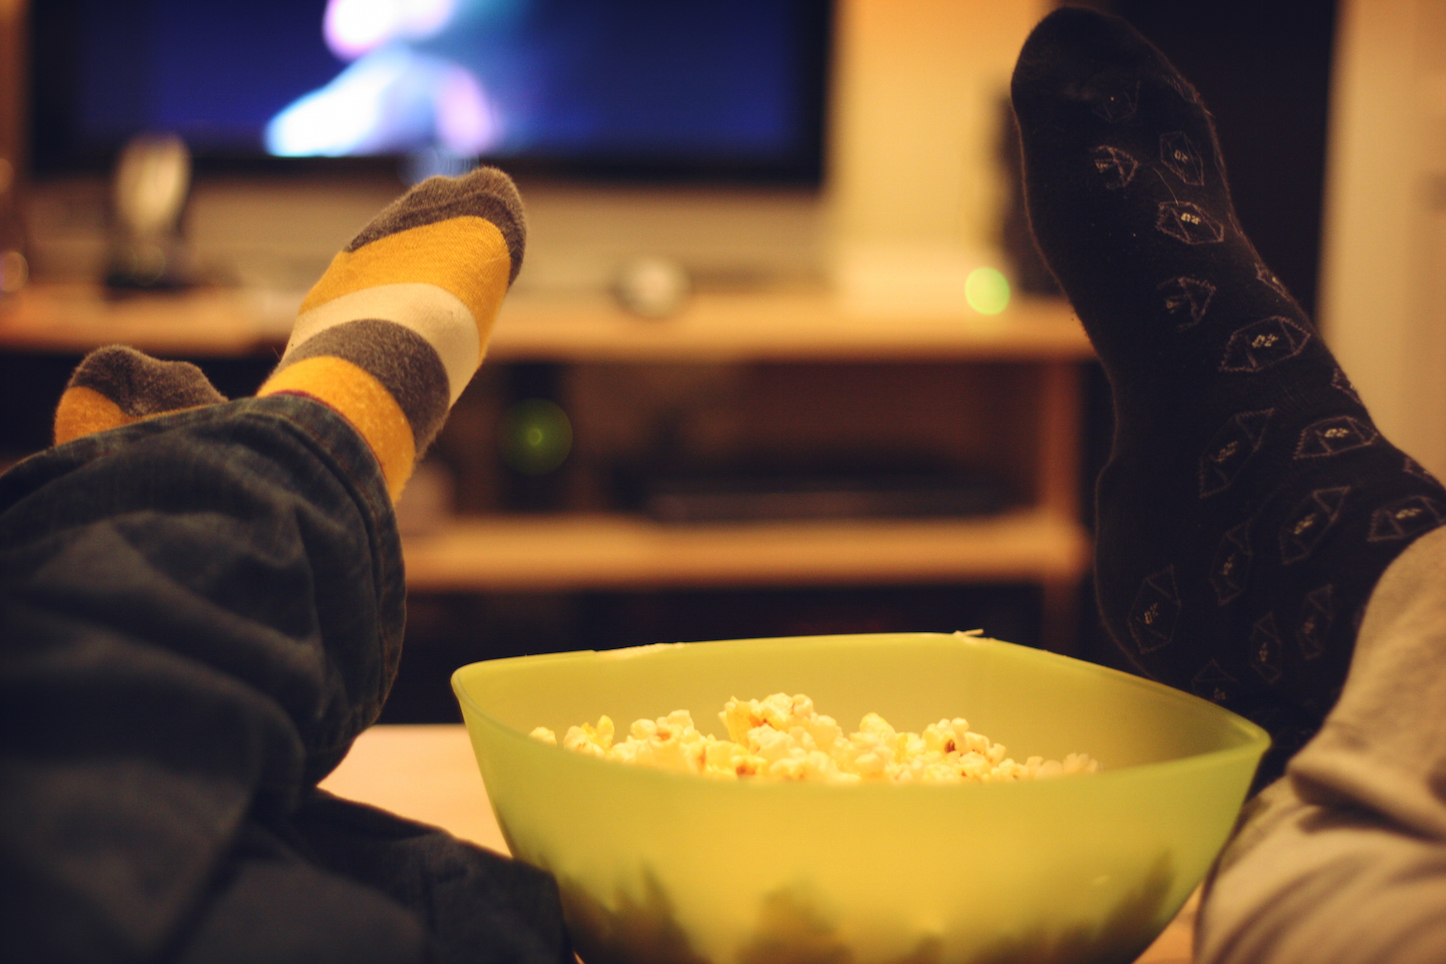 Watching movie at home